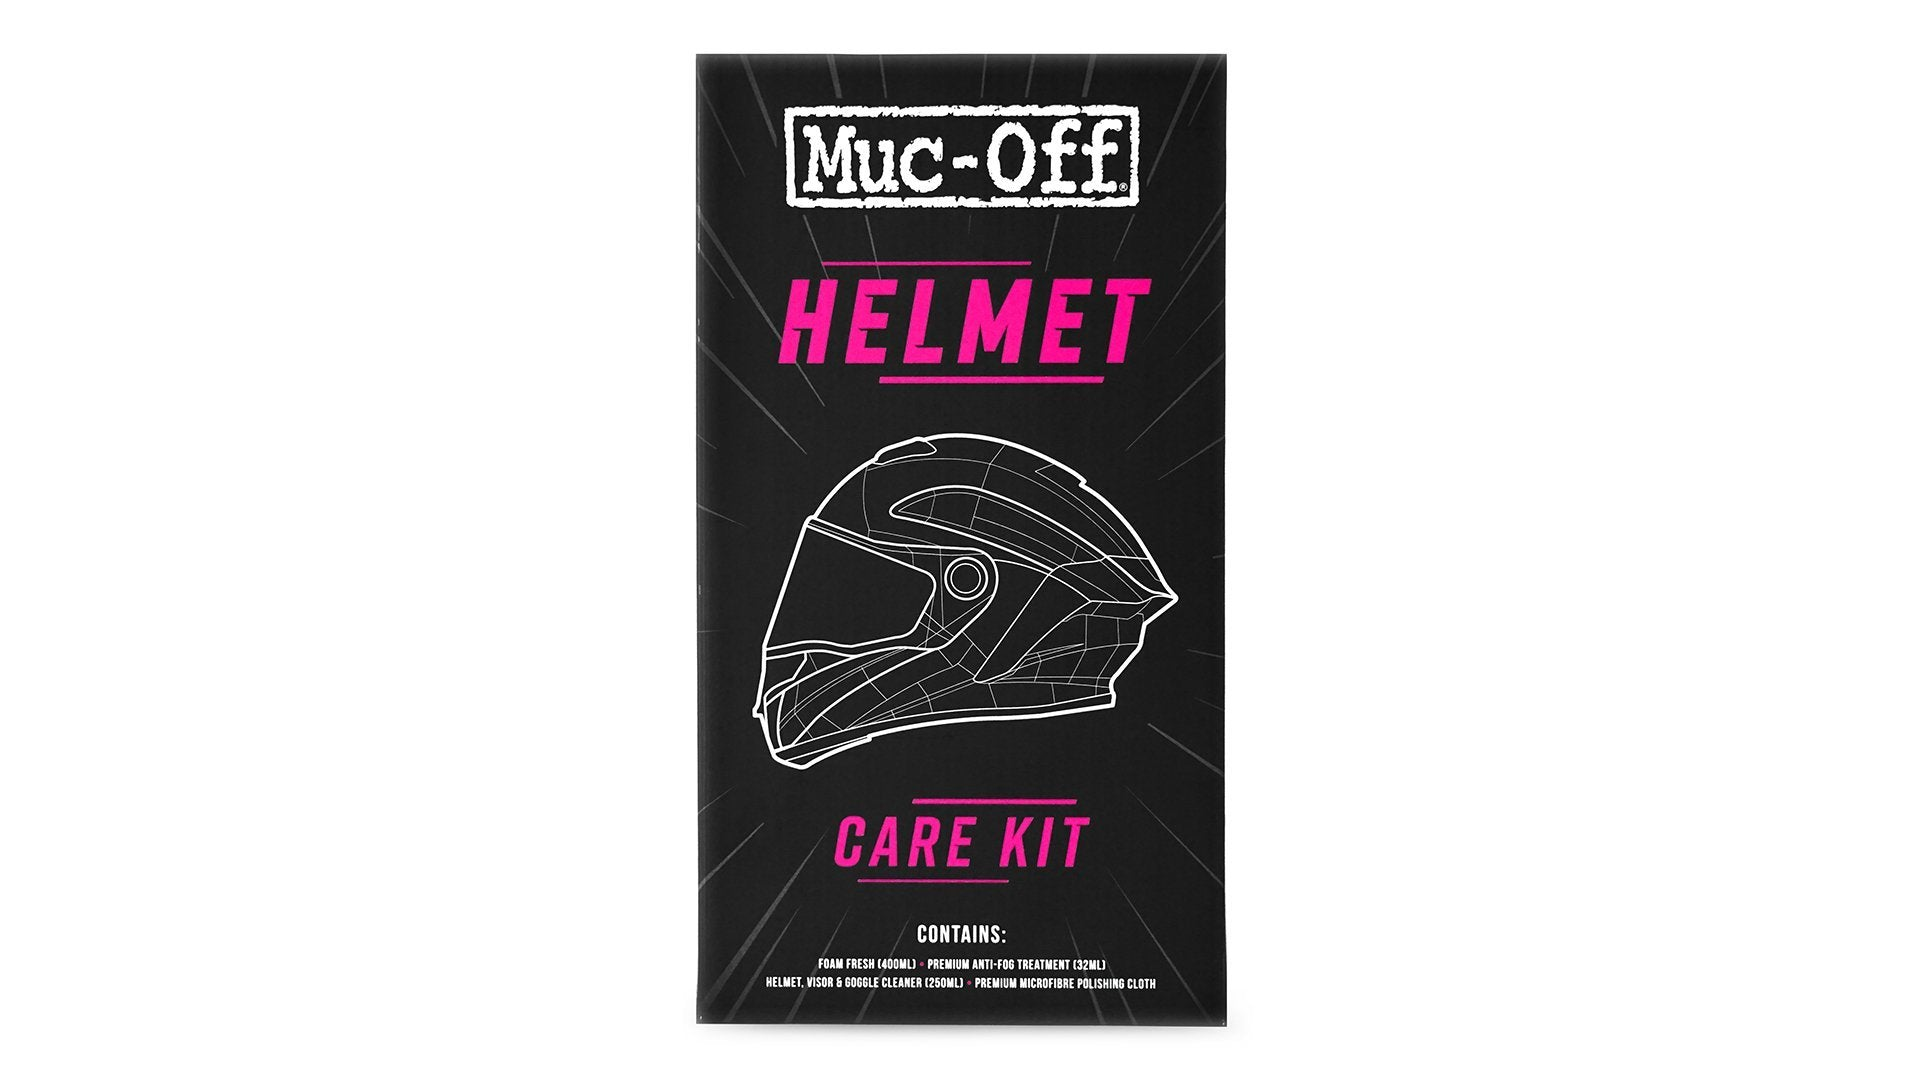 Helmet Care Kit - Muc-Off